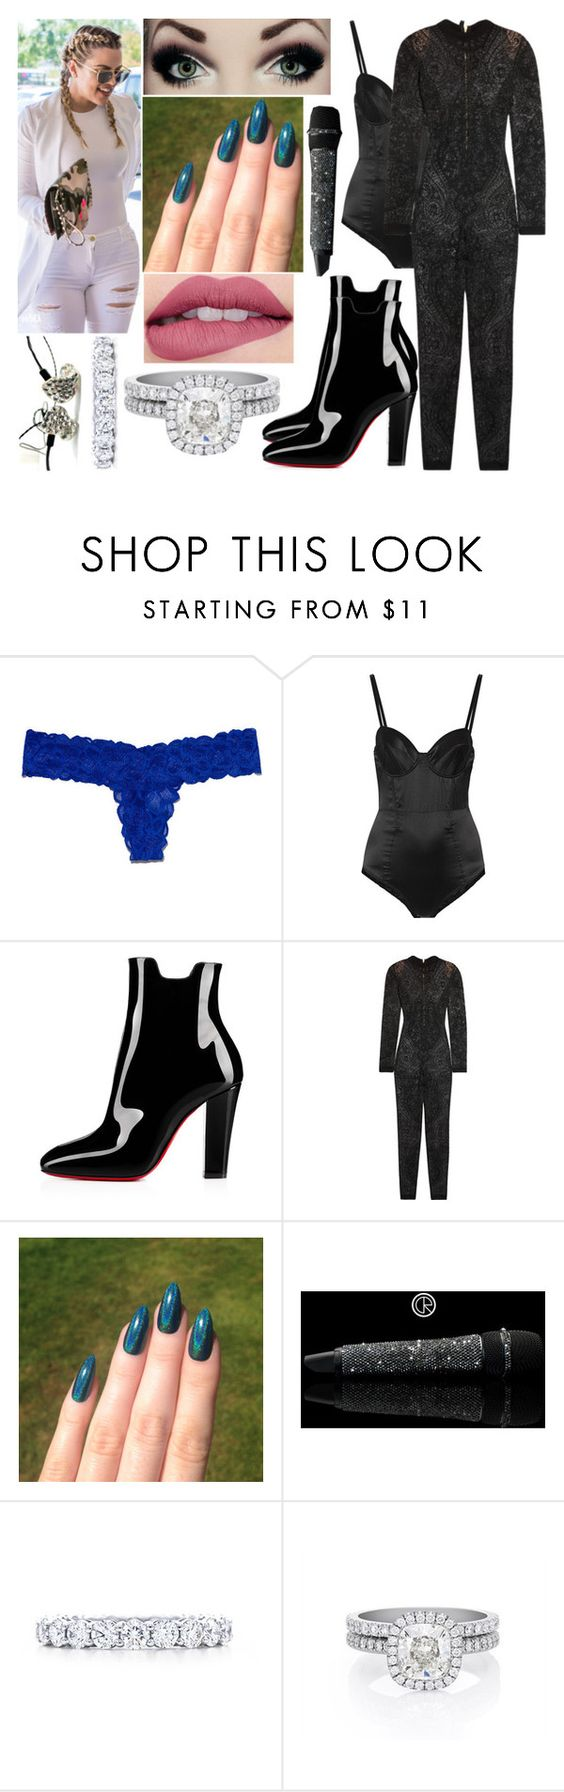 """Dimanche 19 Juin 2016 Soir (20H)"" by laurie-2109 ❤ liked on Polyvore featuring Victoria's Secret PINK, Fleur du Mal, Balmain, Kylie Cosmetics, Tiffany & Co. and De Beers"